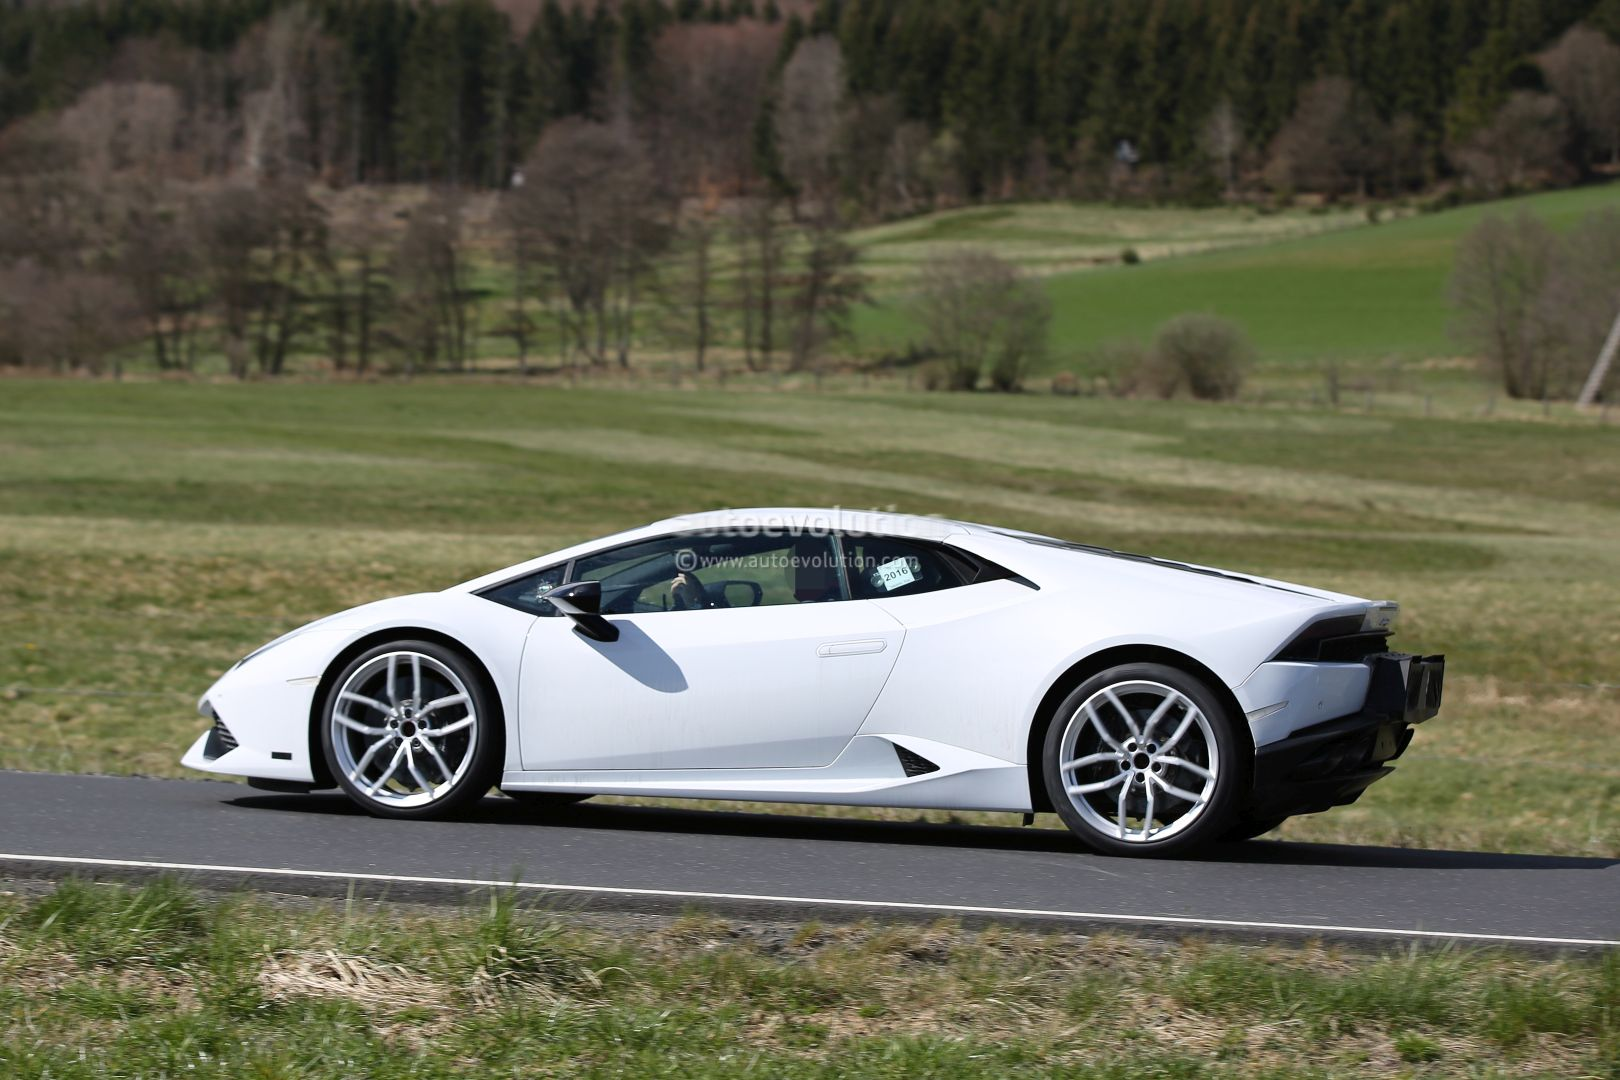 2017 Lamborghini Huracan Superleggera Spied, Shows New GT3 ...